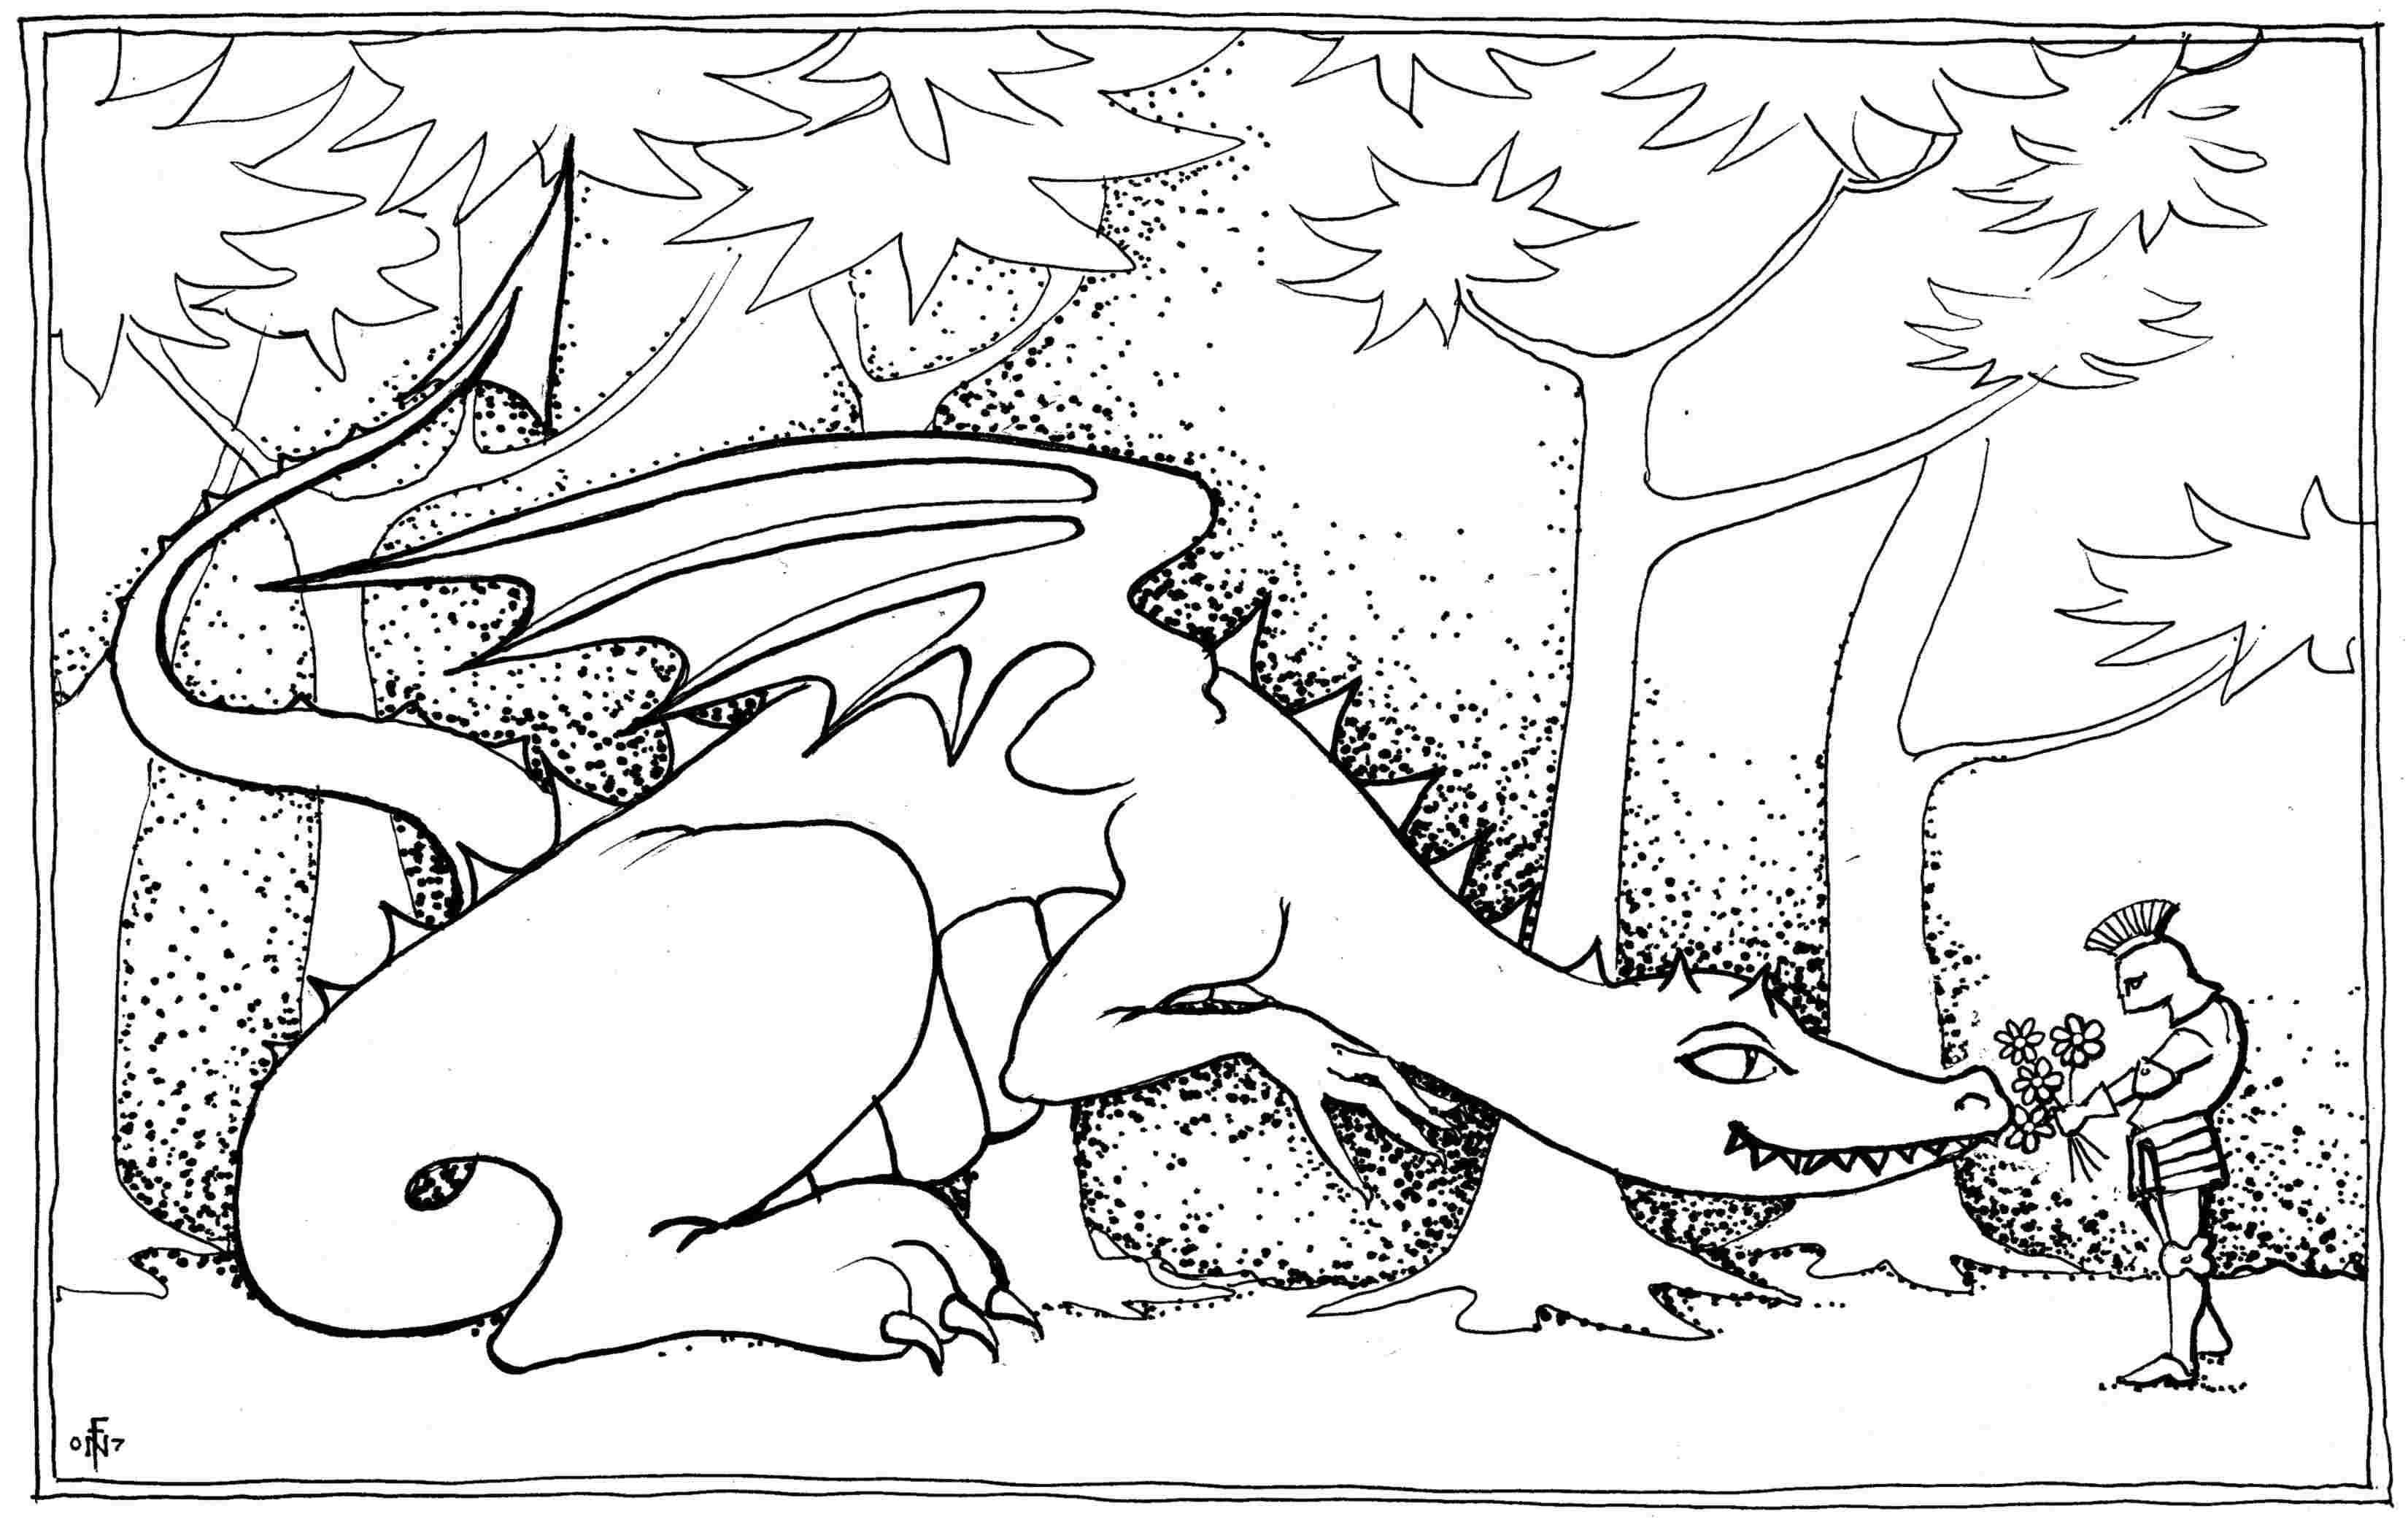 Dragon Bouquet - colouring-in drawing - to download, right click and save, print out and colour in!